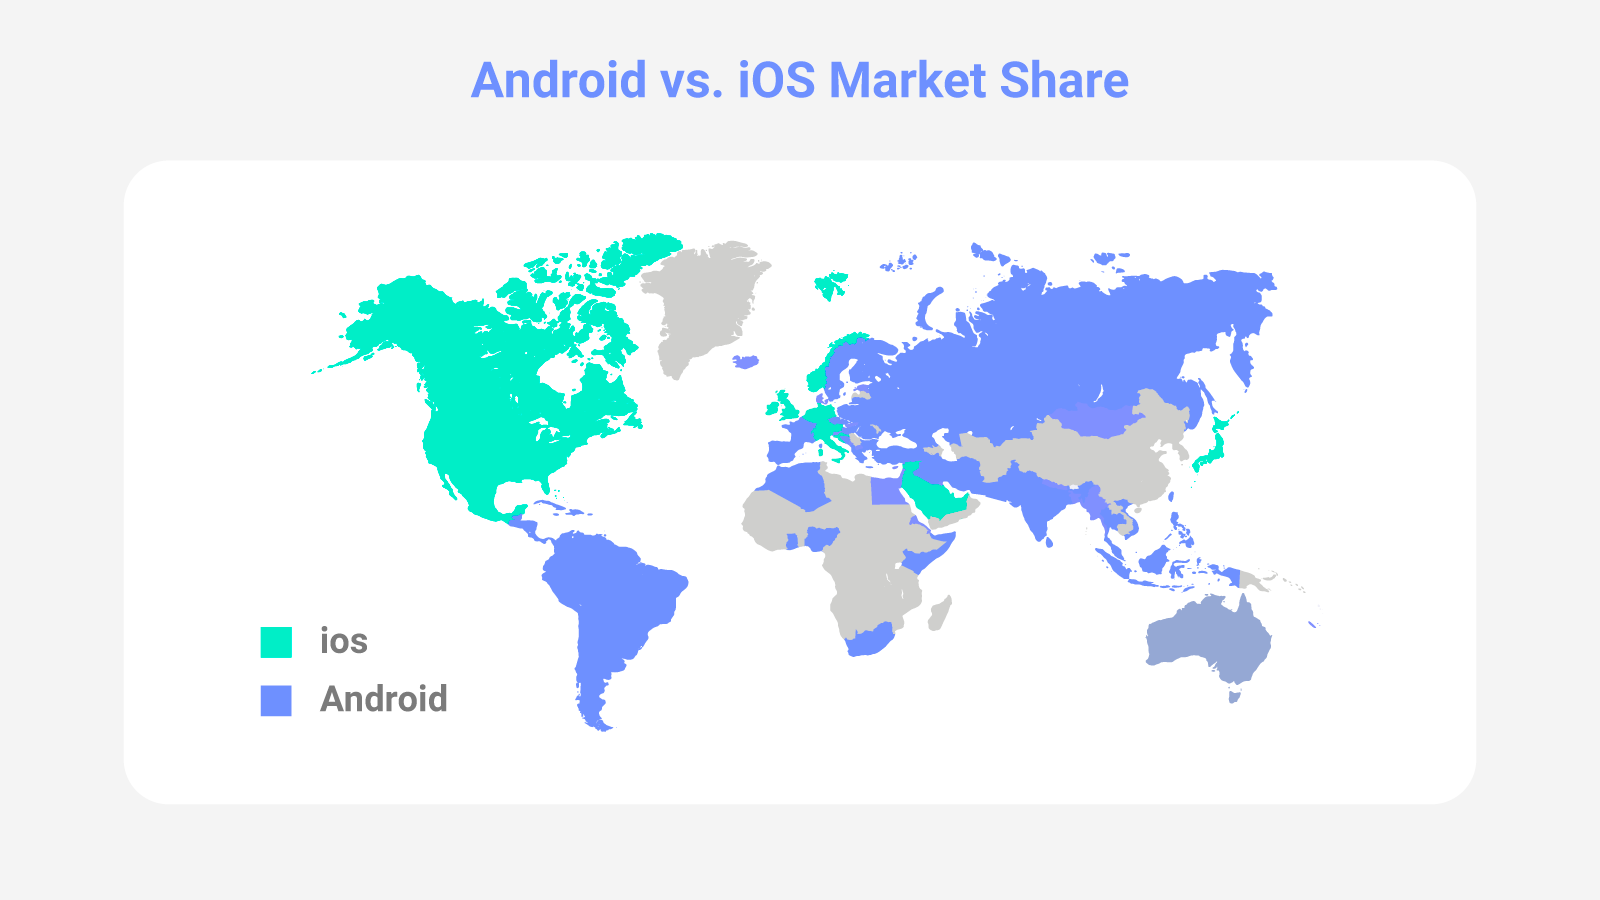 Mobile Operating Systems Market Share